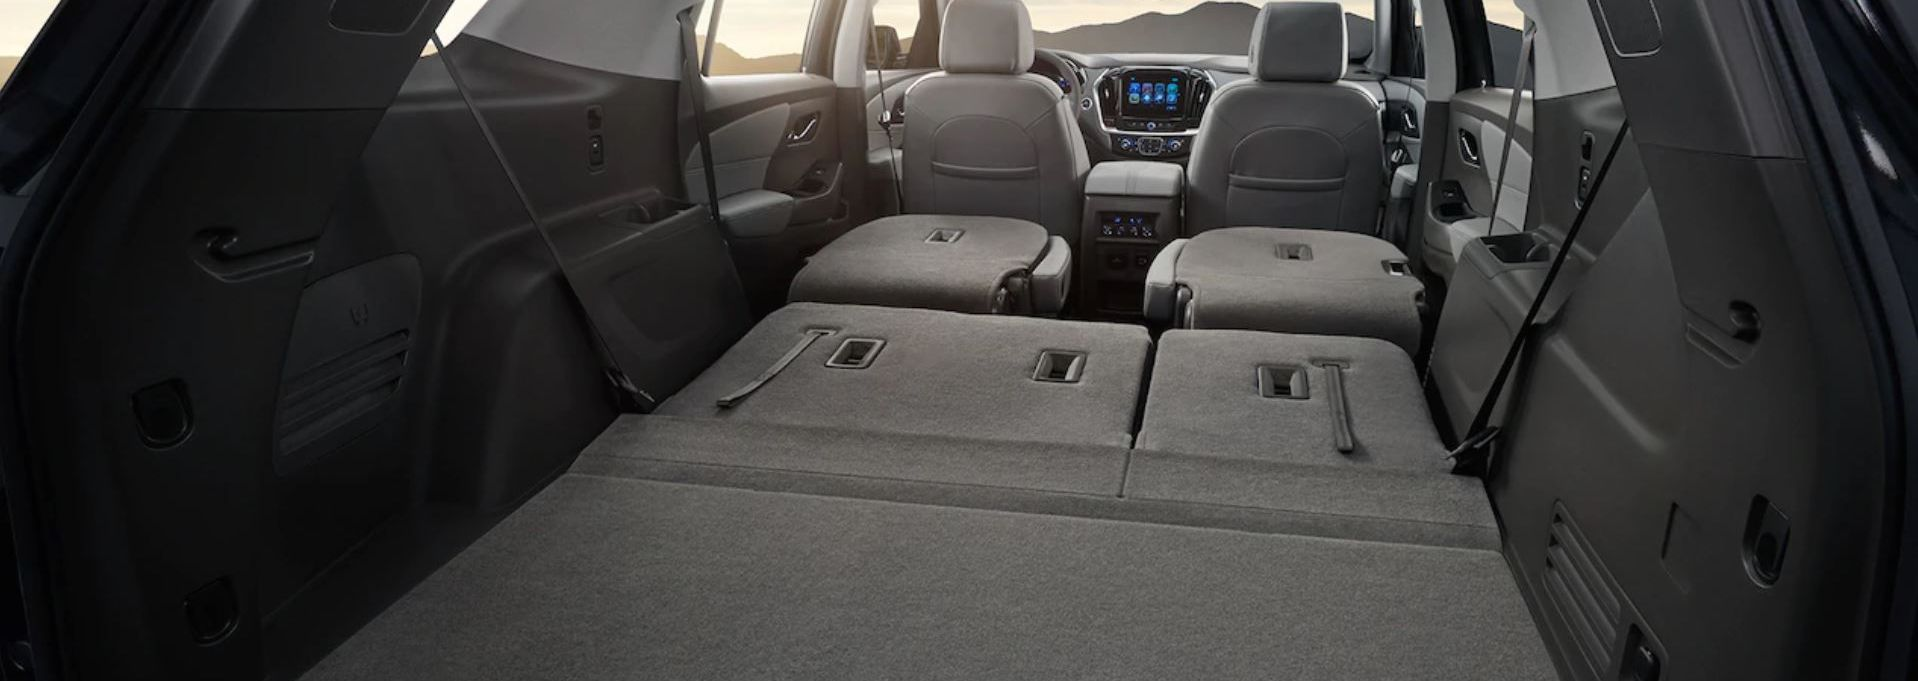 2019 Chevrolet Traverse Spacious Cabin